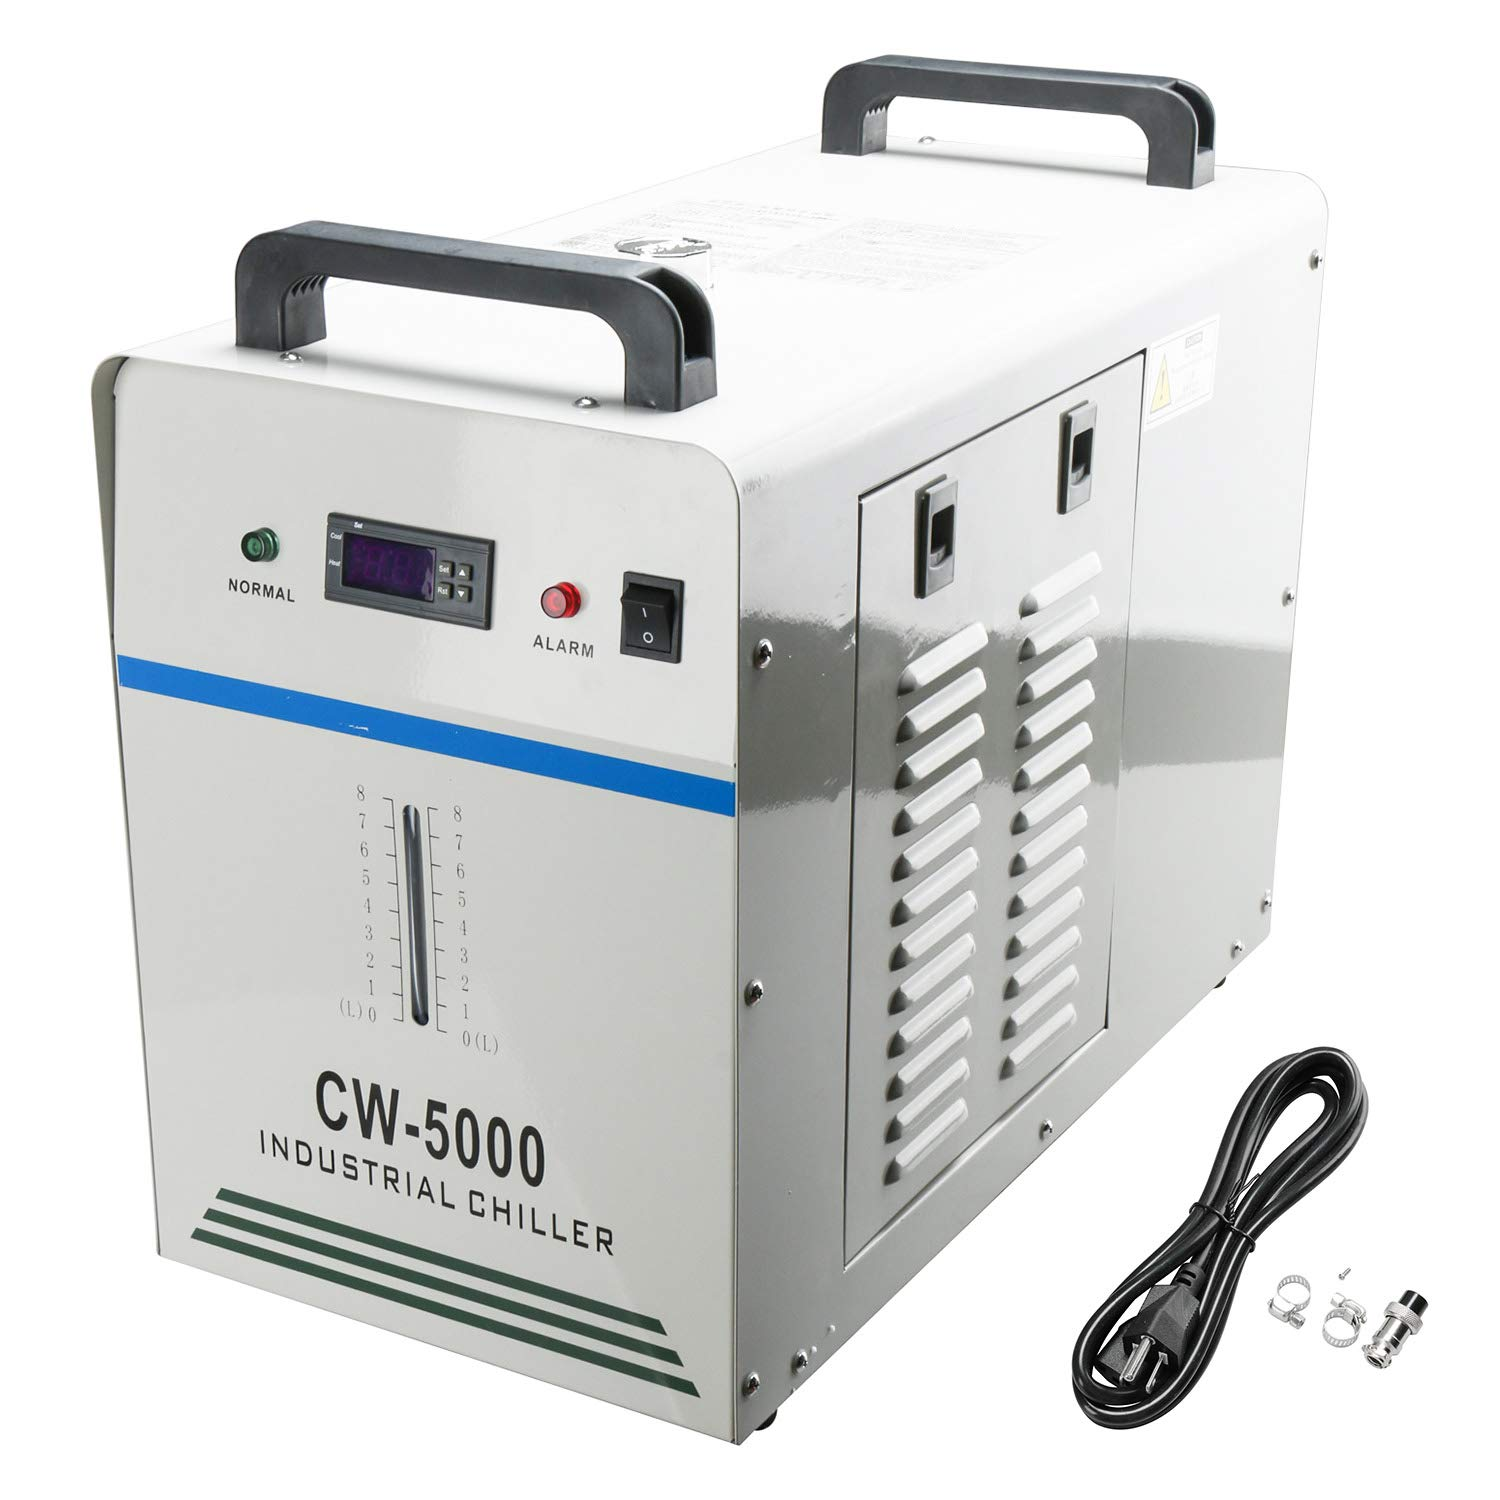 Homend Water Chiller 6L Capacity Industrial Water Chiller CW-5000DG Thermolysis Type Industrial Water Cooling Chiller for 80W /100W Laser Engraving Machine